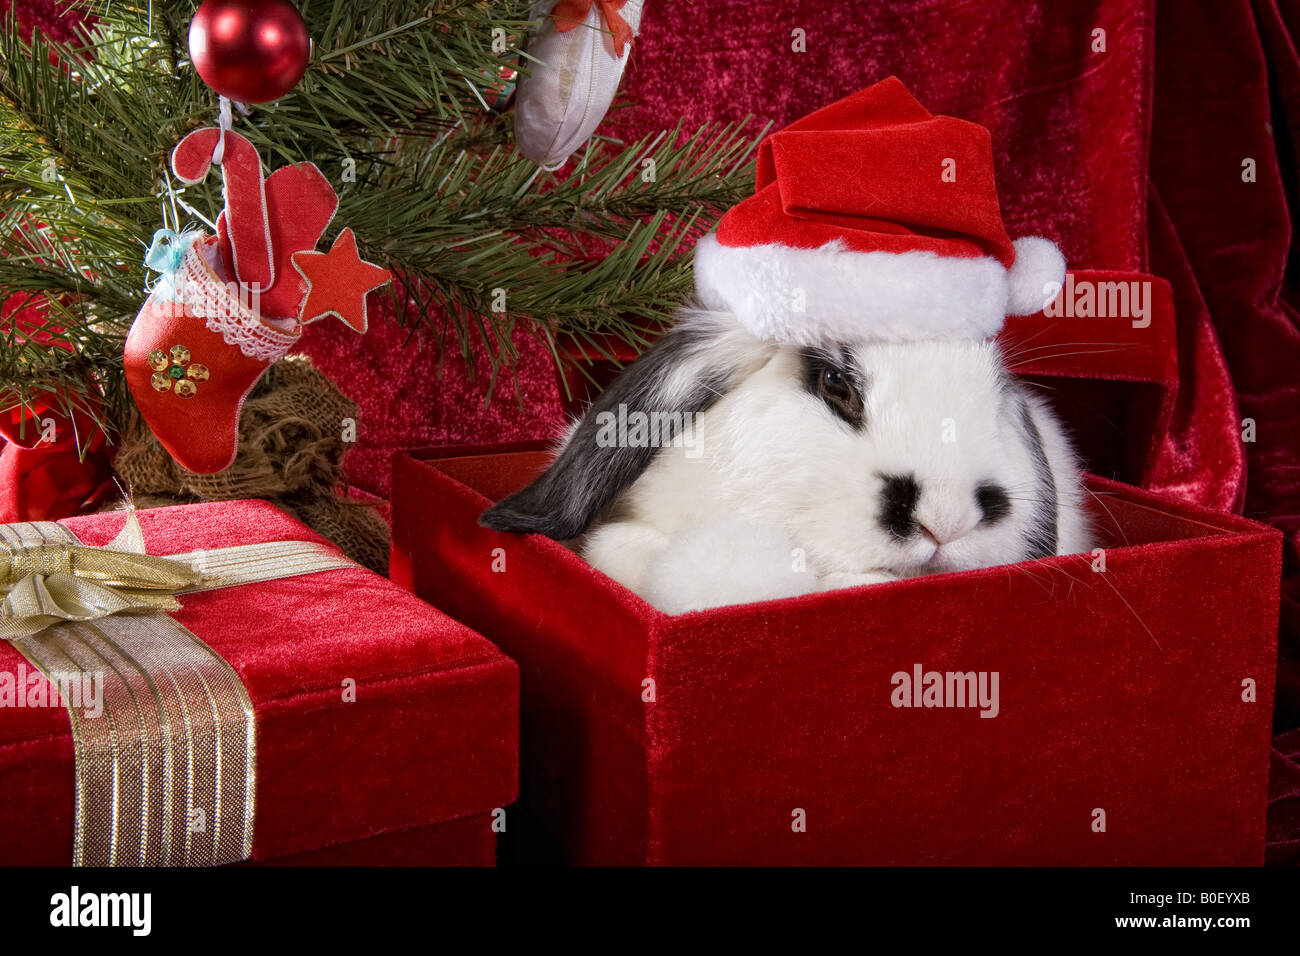 The Christmas Bunny.Cute Christmas Bunny Under The Tree On Gift Box With Red